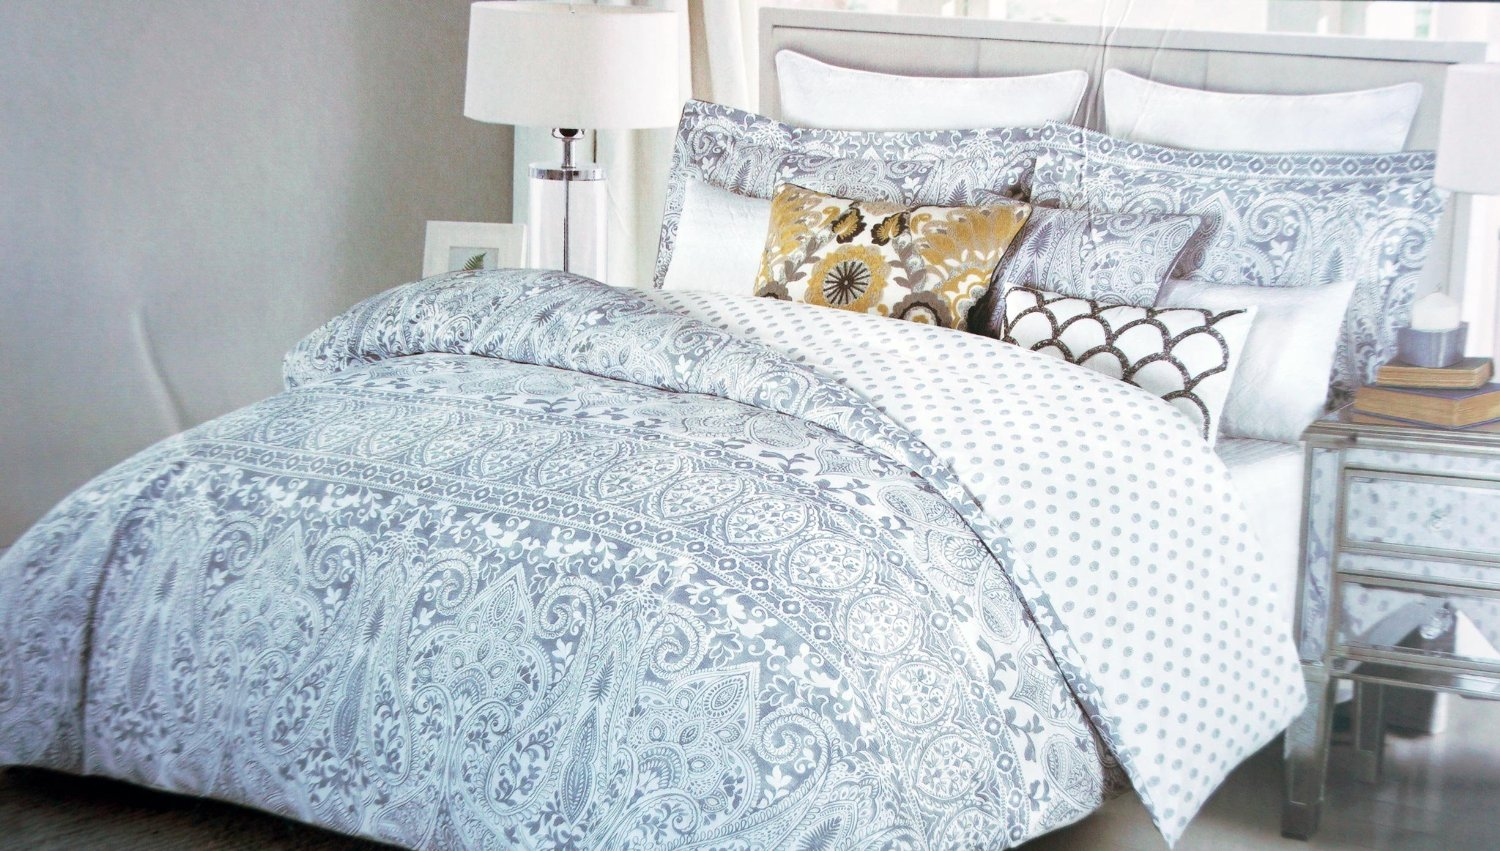 Nicole Miller Bedding 3 Piece King Duvet Cover Set Gray Paisley Medallion Pattern On White